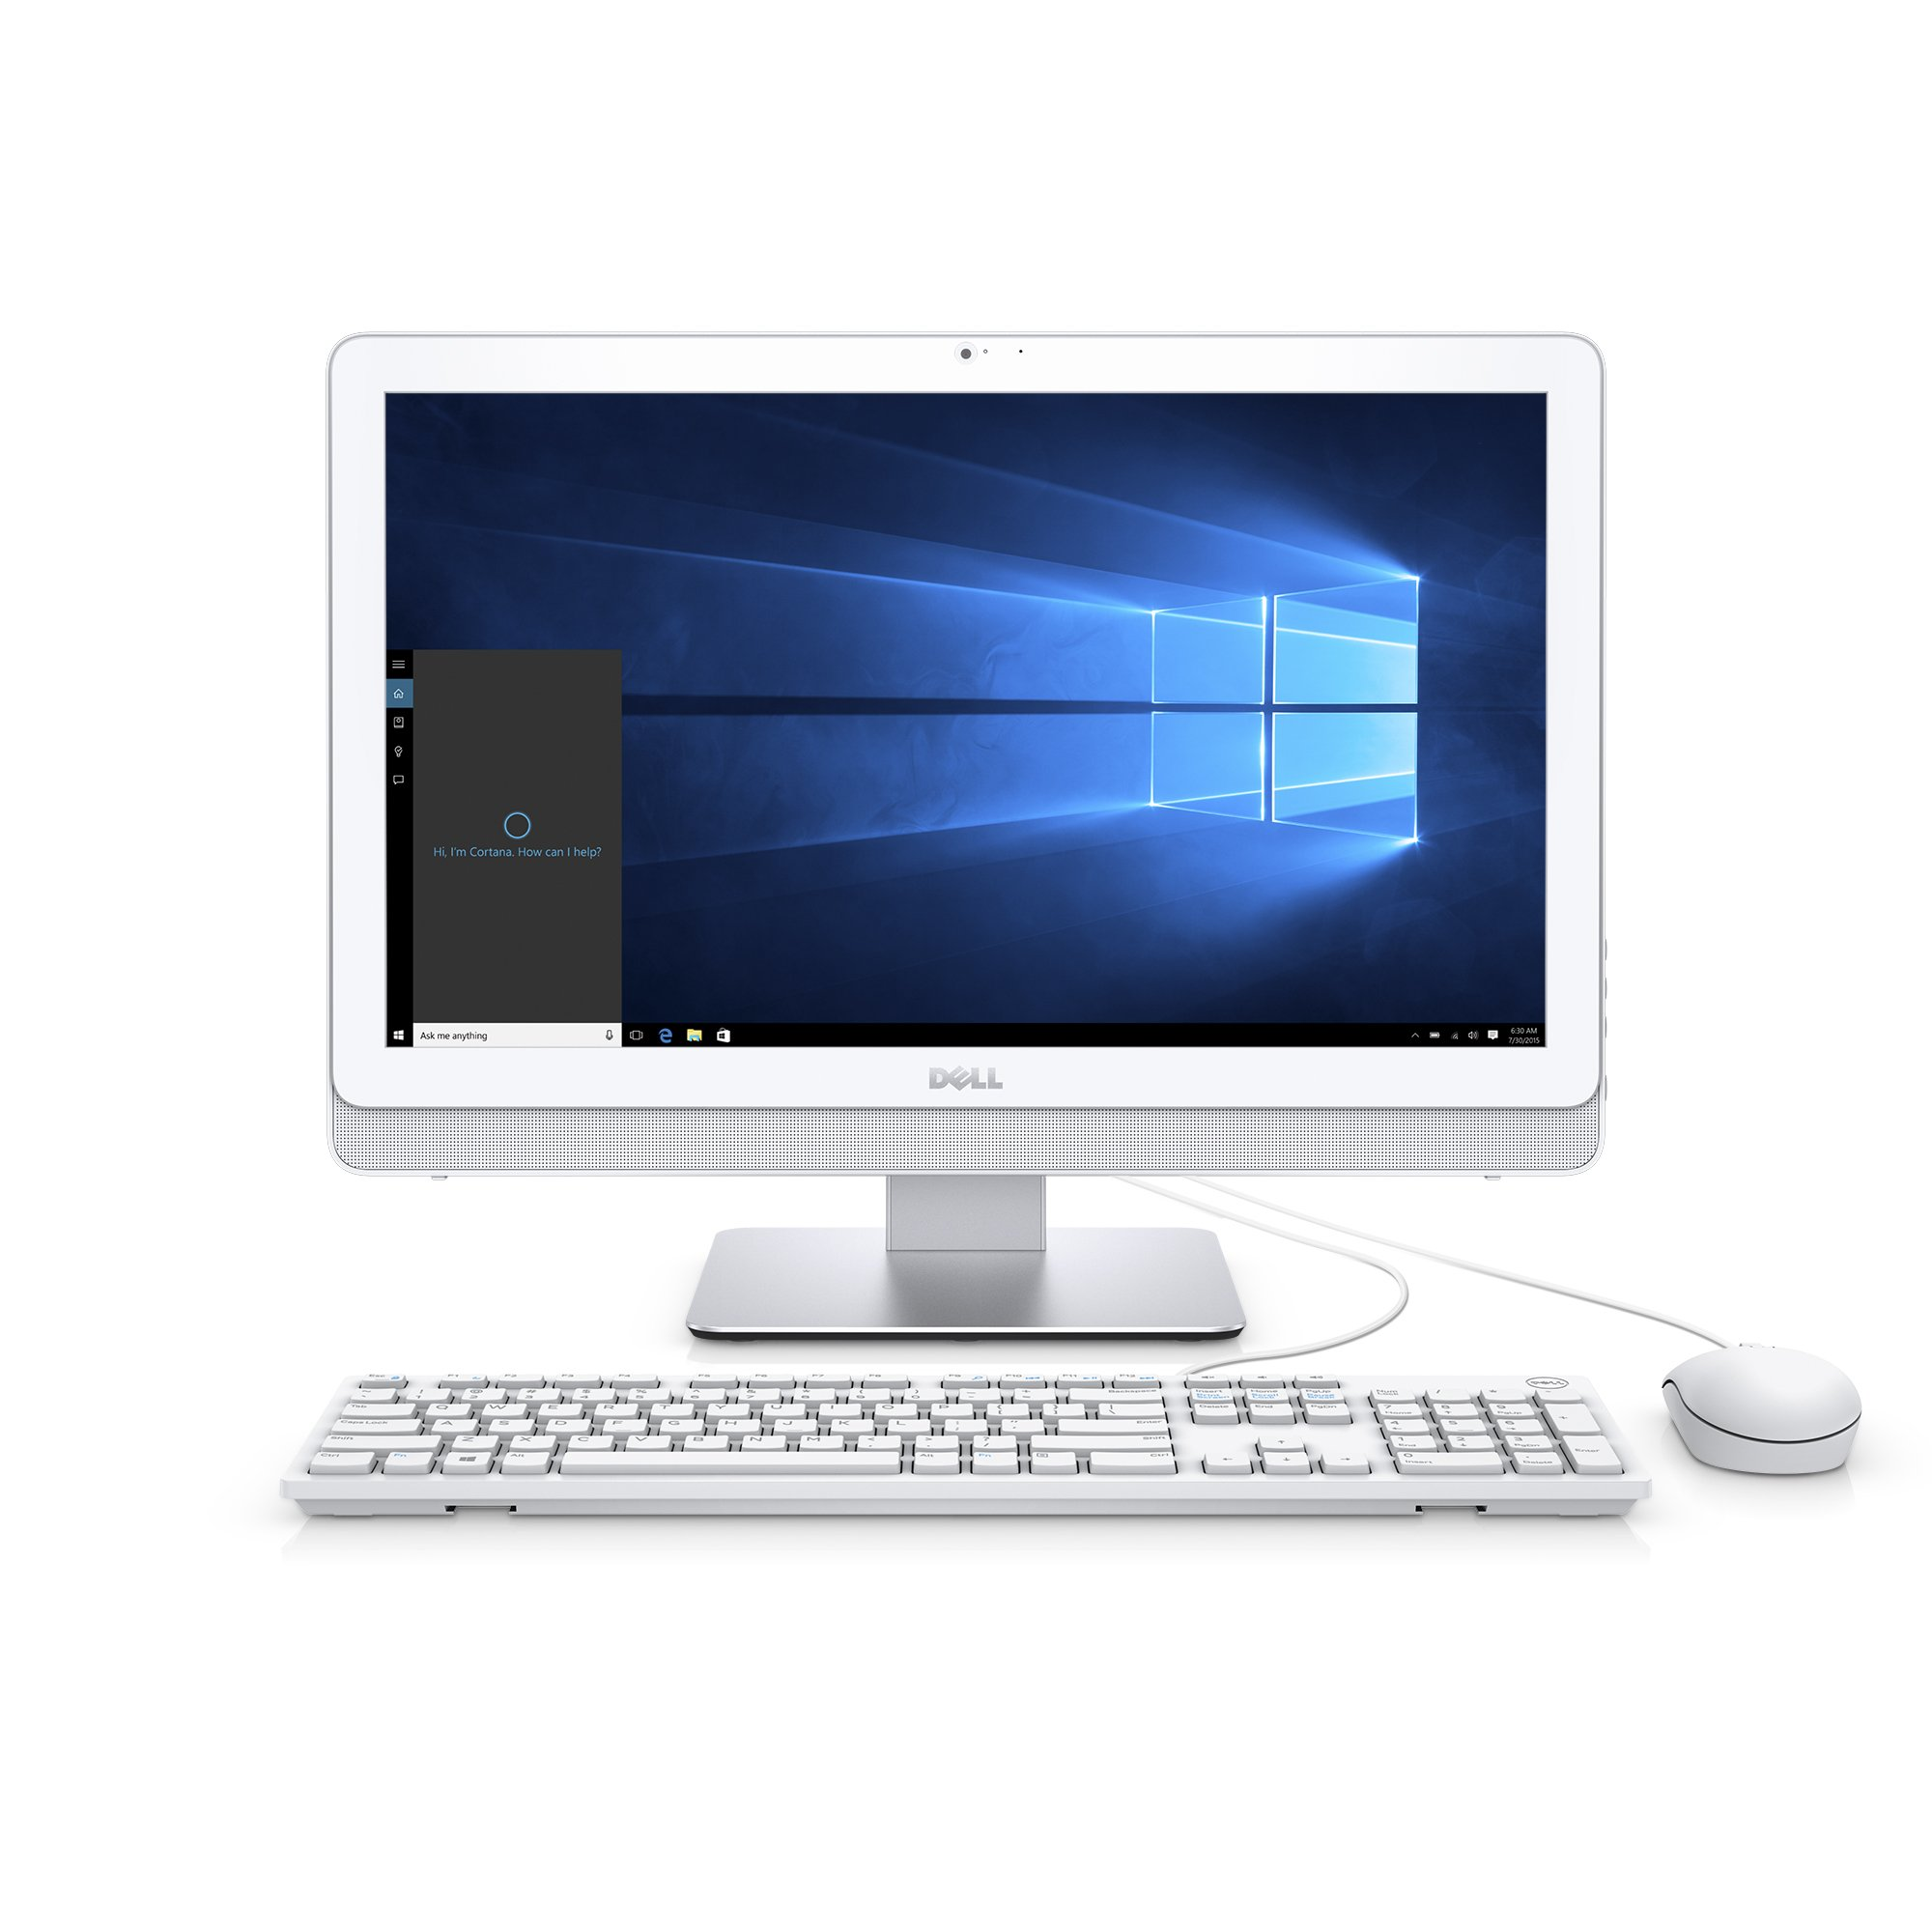 Dell i3265-A643WHT-PUS Inspiron 3265 AIO Desktop, 21.5'' Display, AMD A6-7310 APU, 6GB Dual Channel Memory, 1TB 5400 rpm Hard Drive, White by Dell